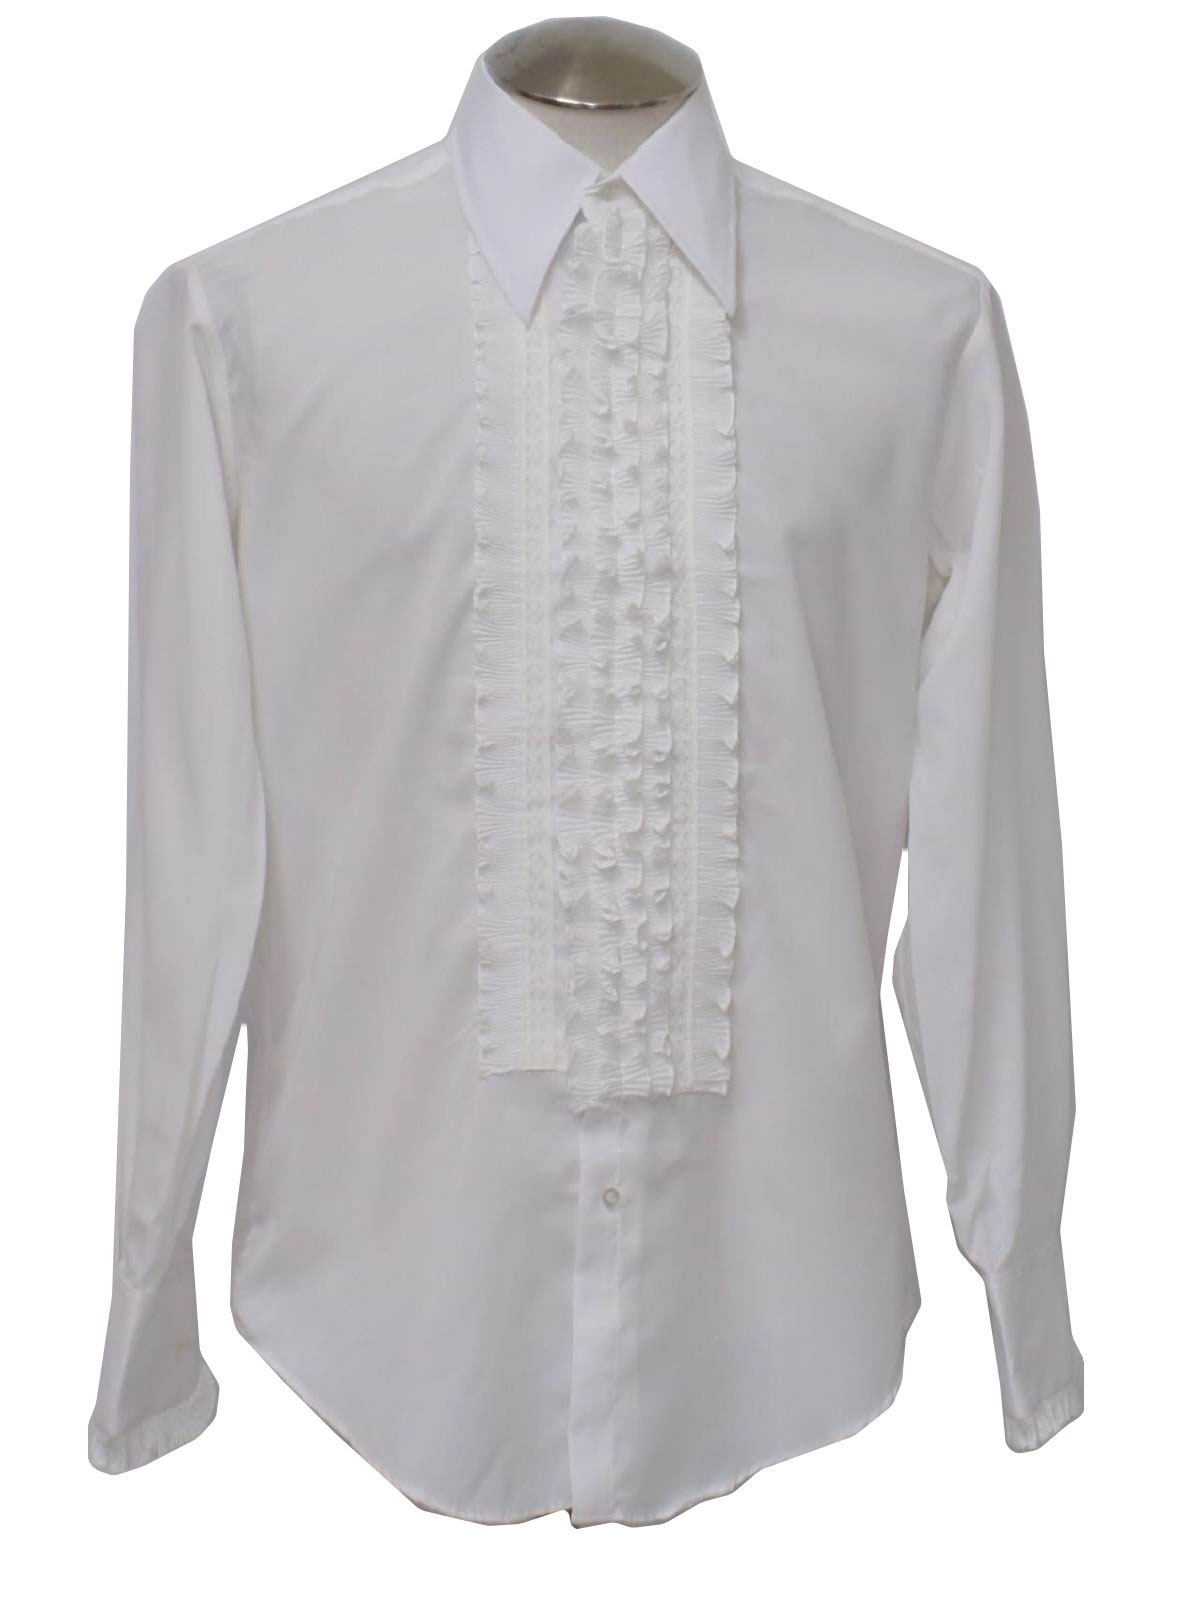 3093d703319a95 Vintage 1970 s Shirt  70s -After Six- Mens slightly sheer white ...